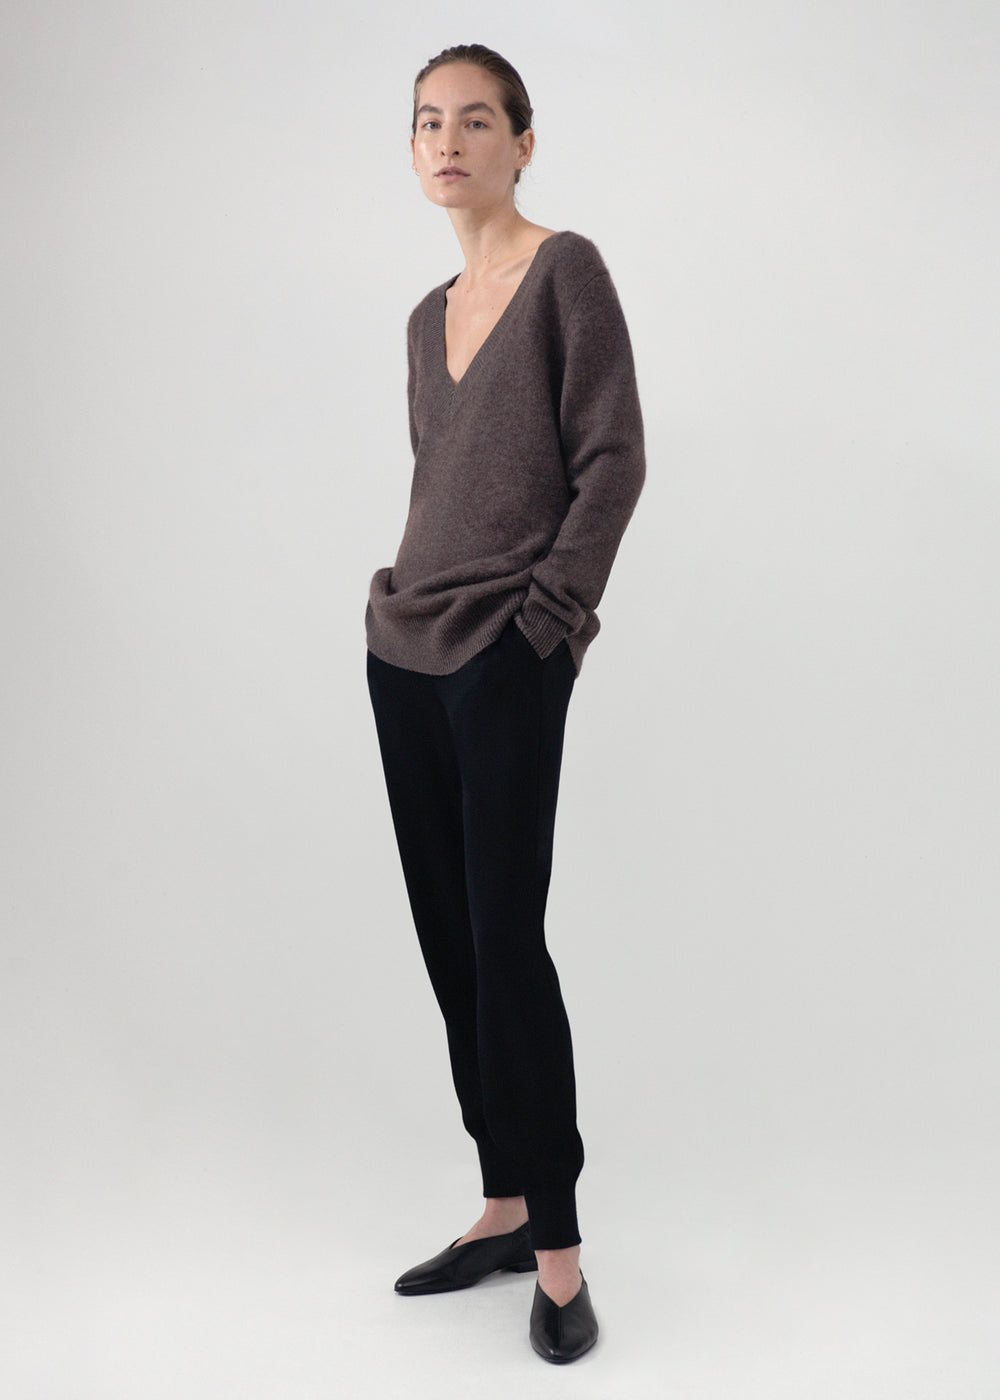 V-Neck Boyfriend Sweater in Wool Cashmere - Brown - CO